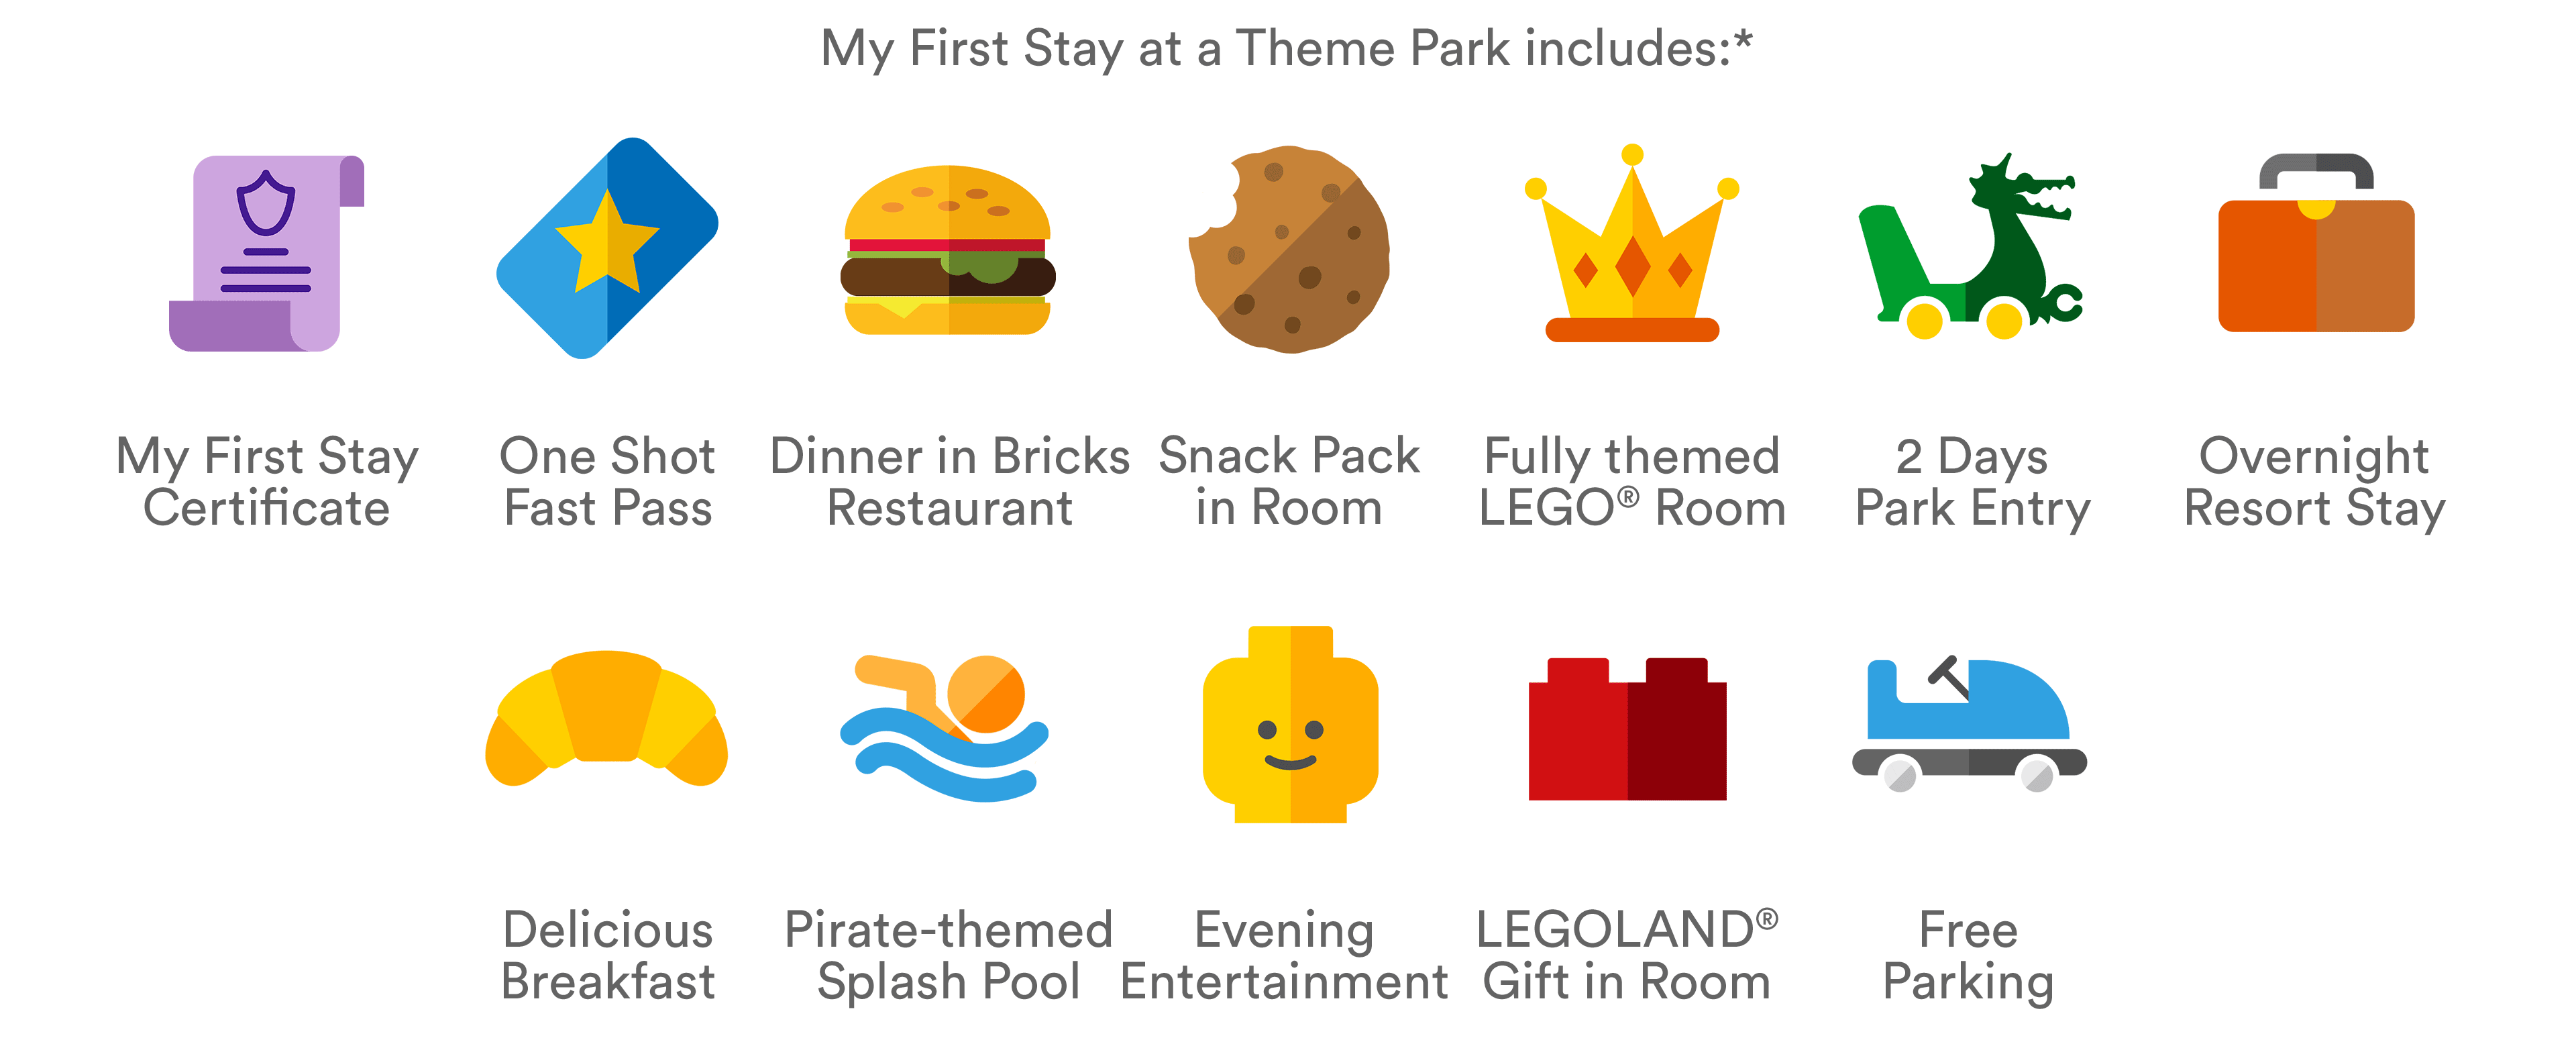 Benefits of your My First Stay at a Theme Park LEGOLAND Holiday